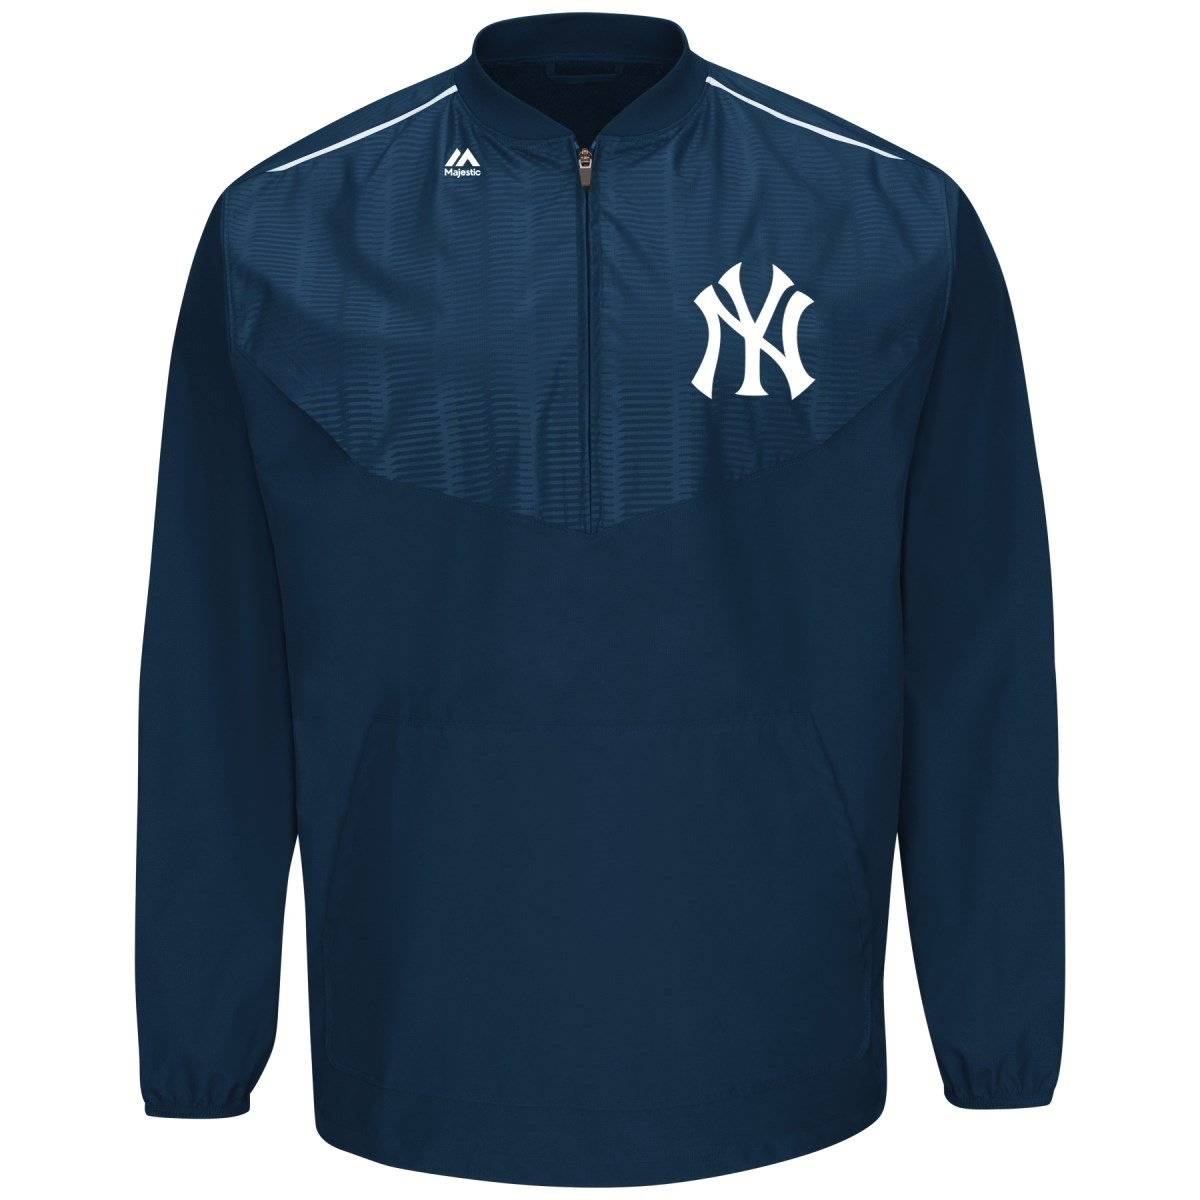 NEW YORK Yankees Majestic MLB Authentic Cool Base on Field de ...